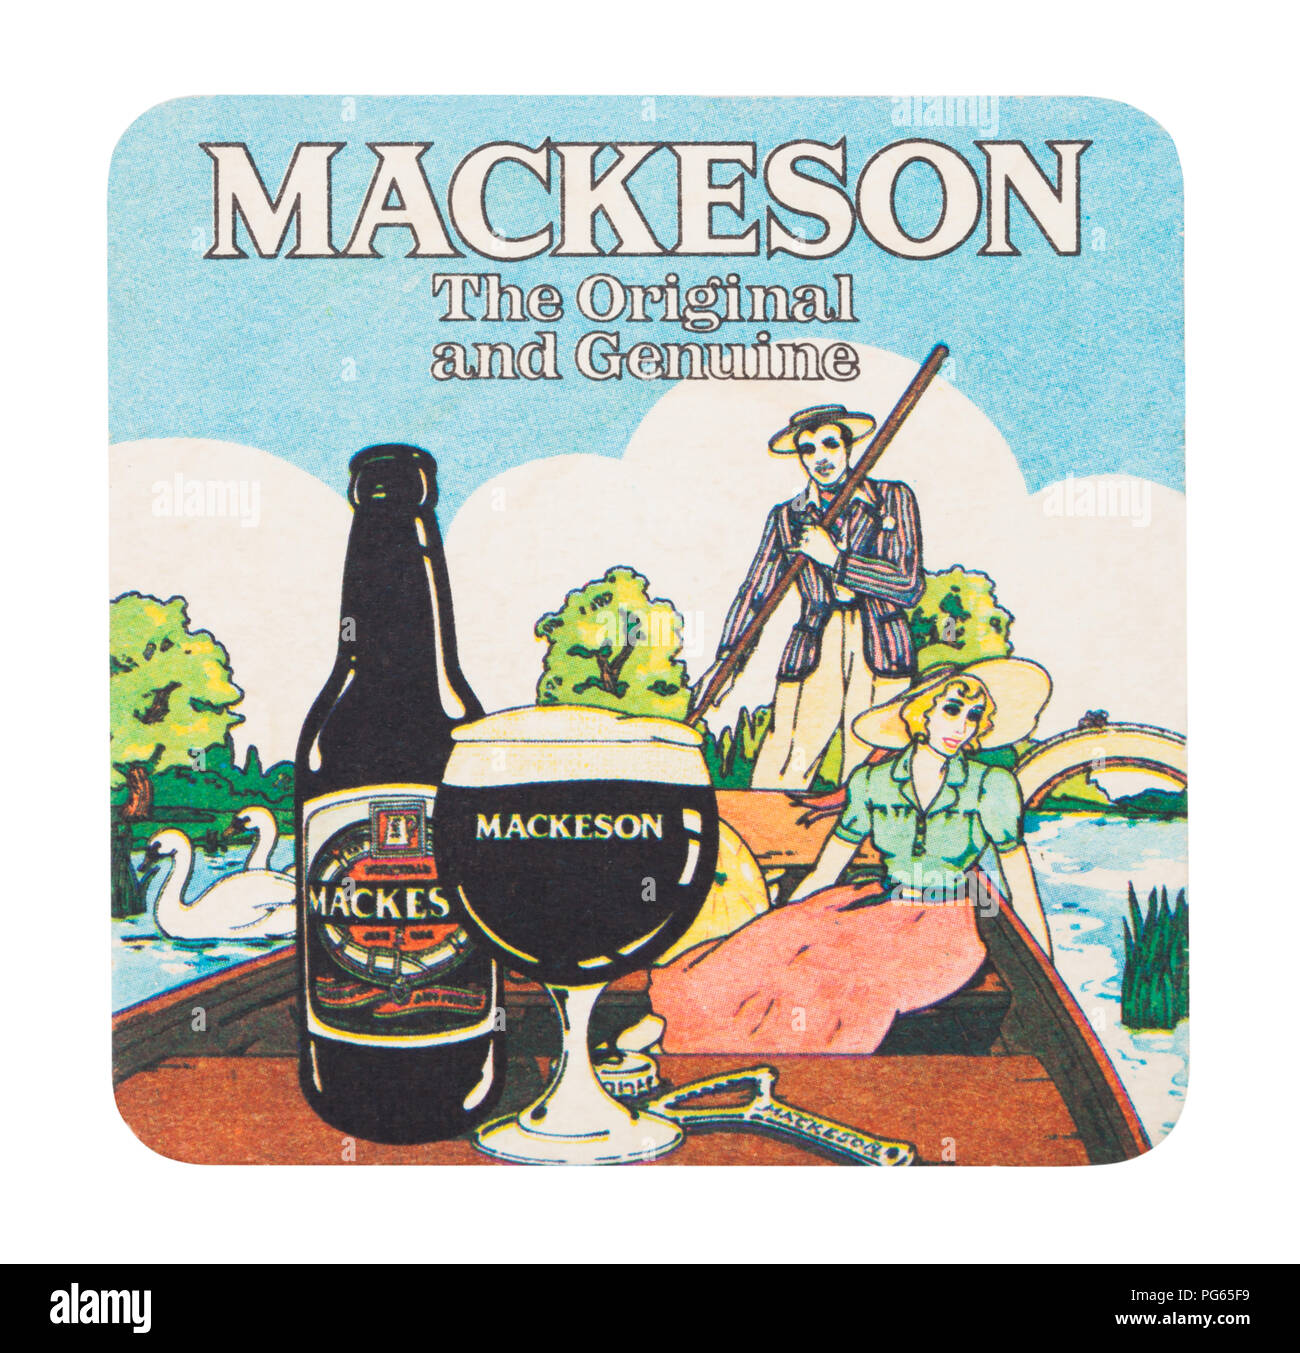 LONDON, UK - AUGUST 22, 2018: Mackeson vintage paper beer beermat coaster isolated on white background. - Stock Image